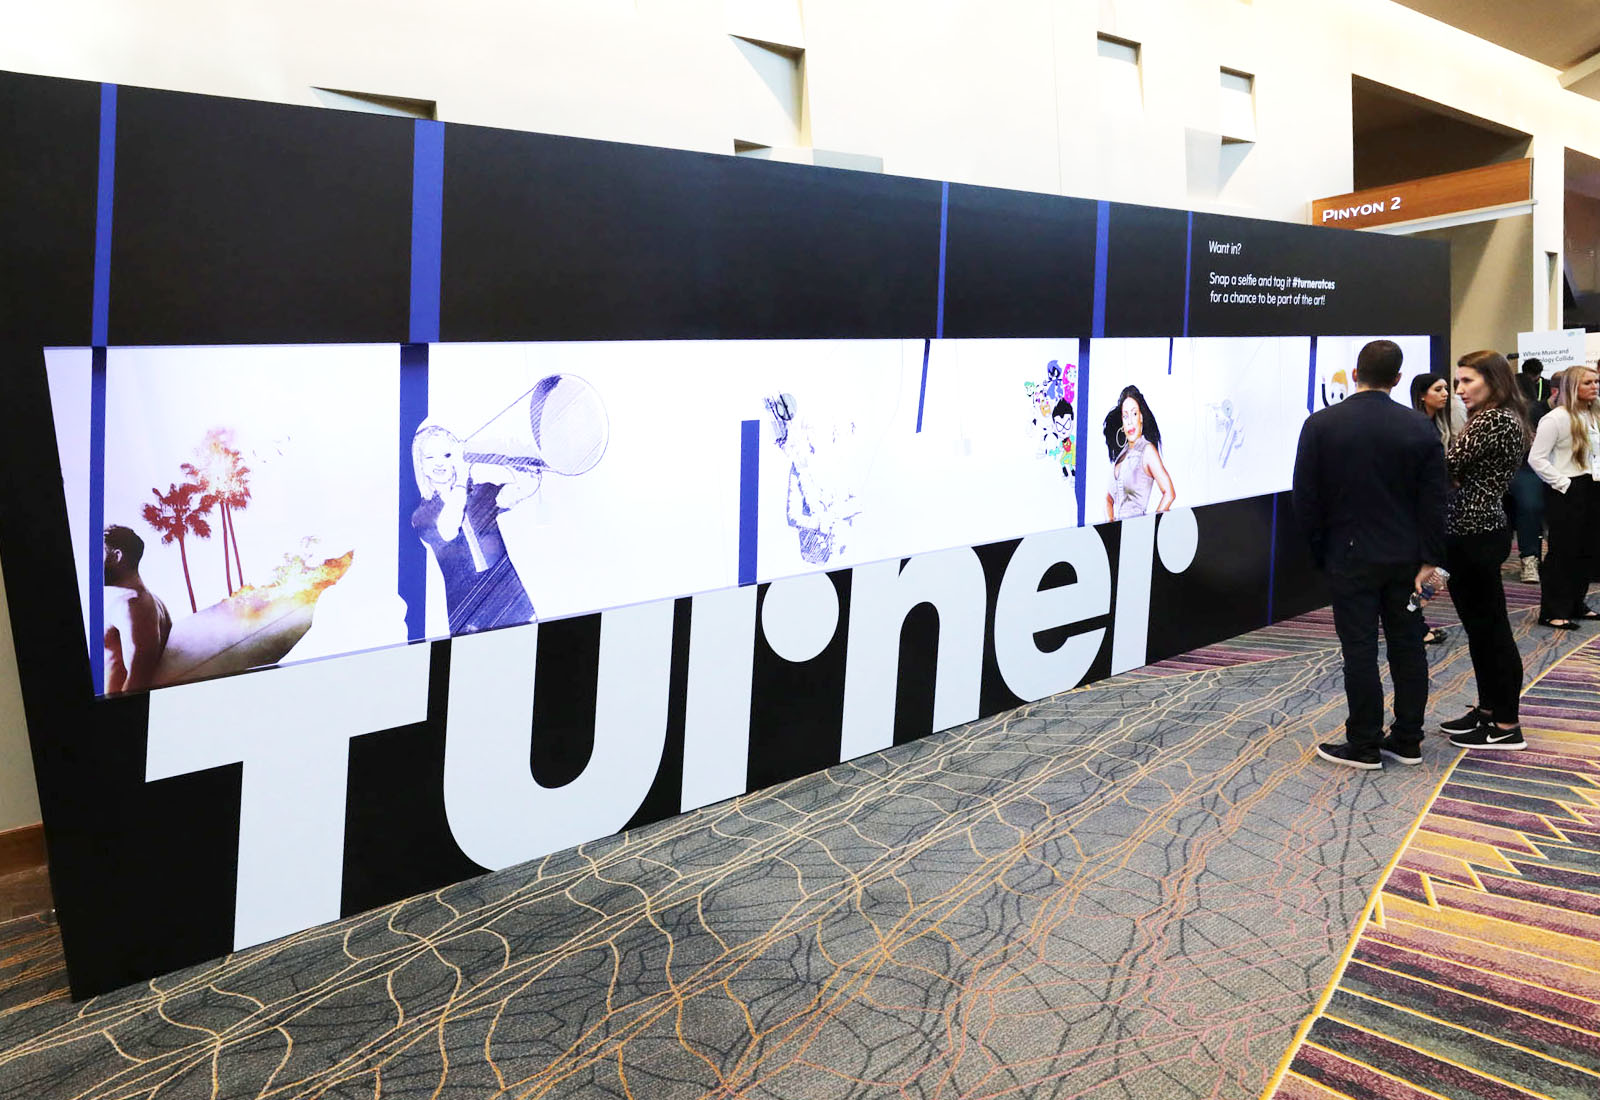 Turner activation at CES